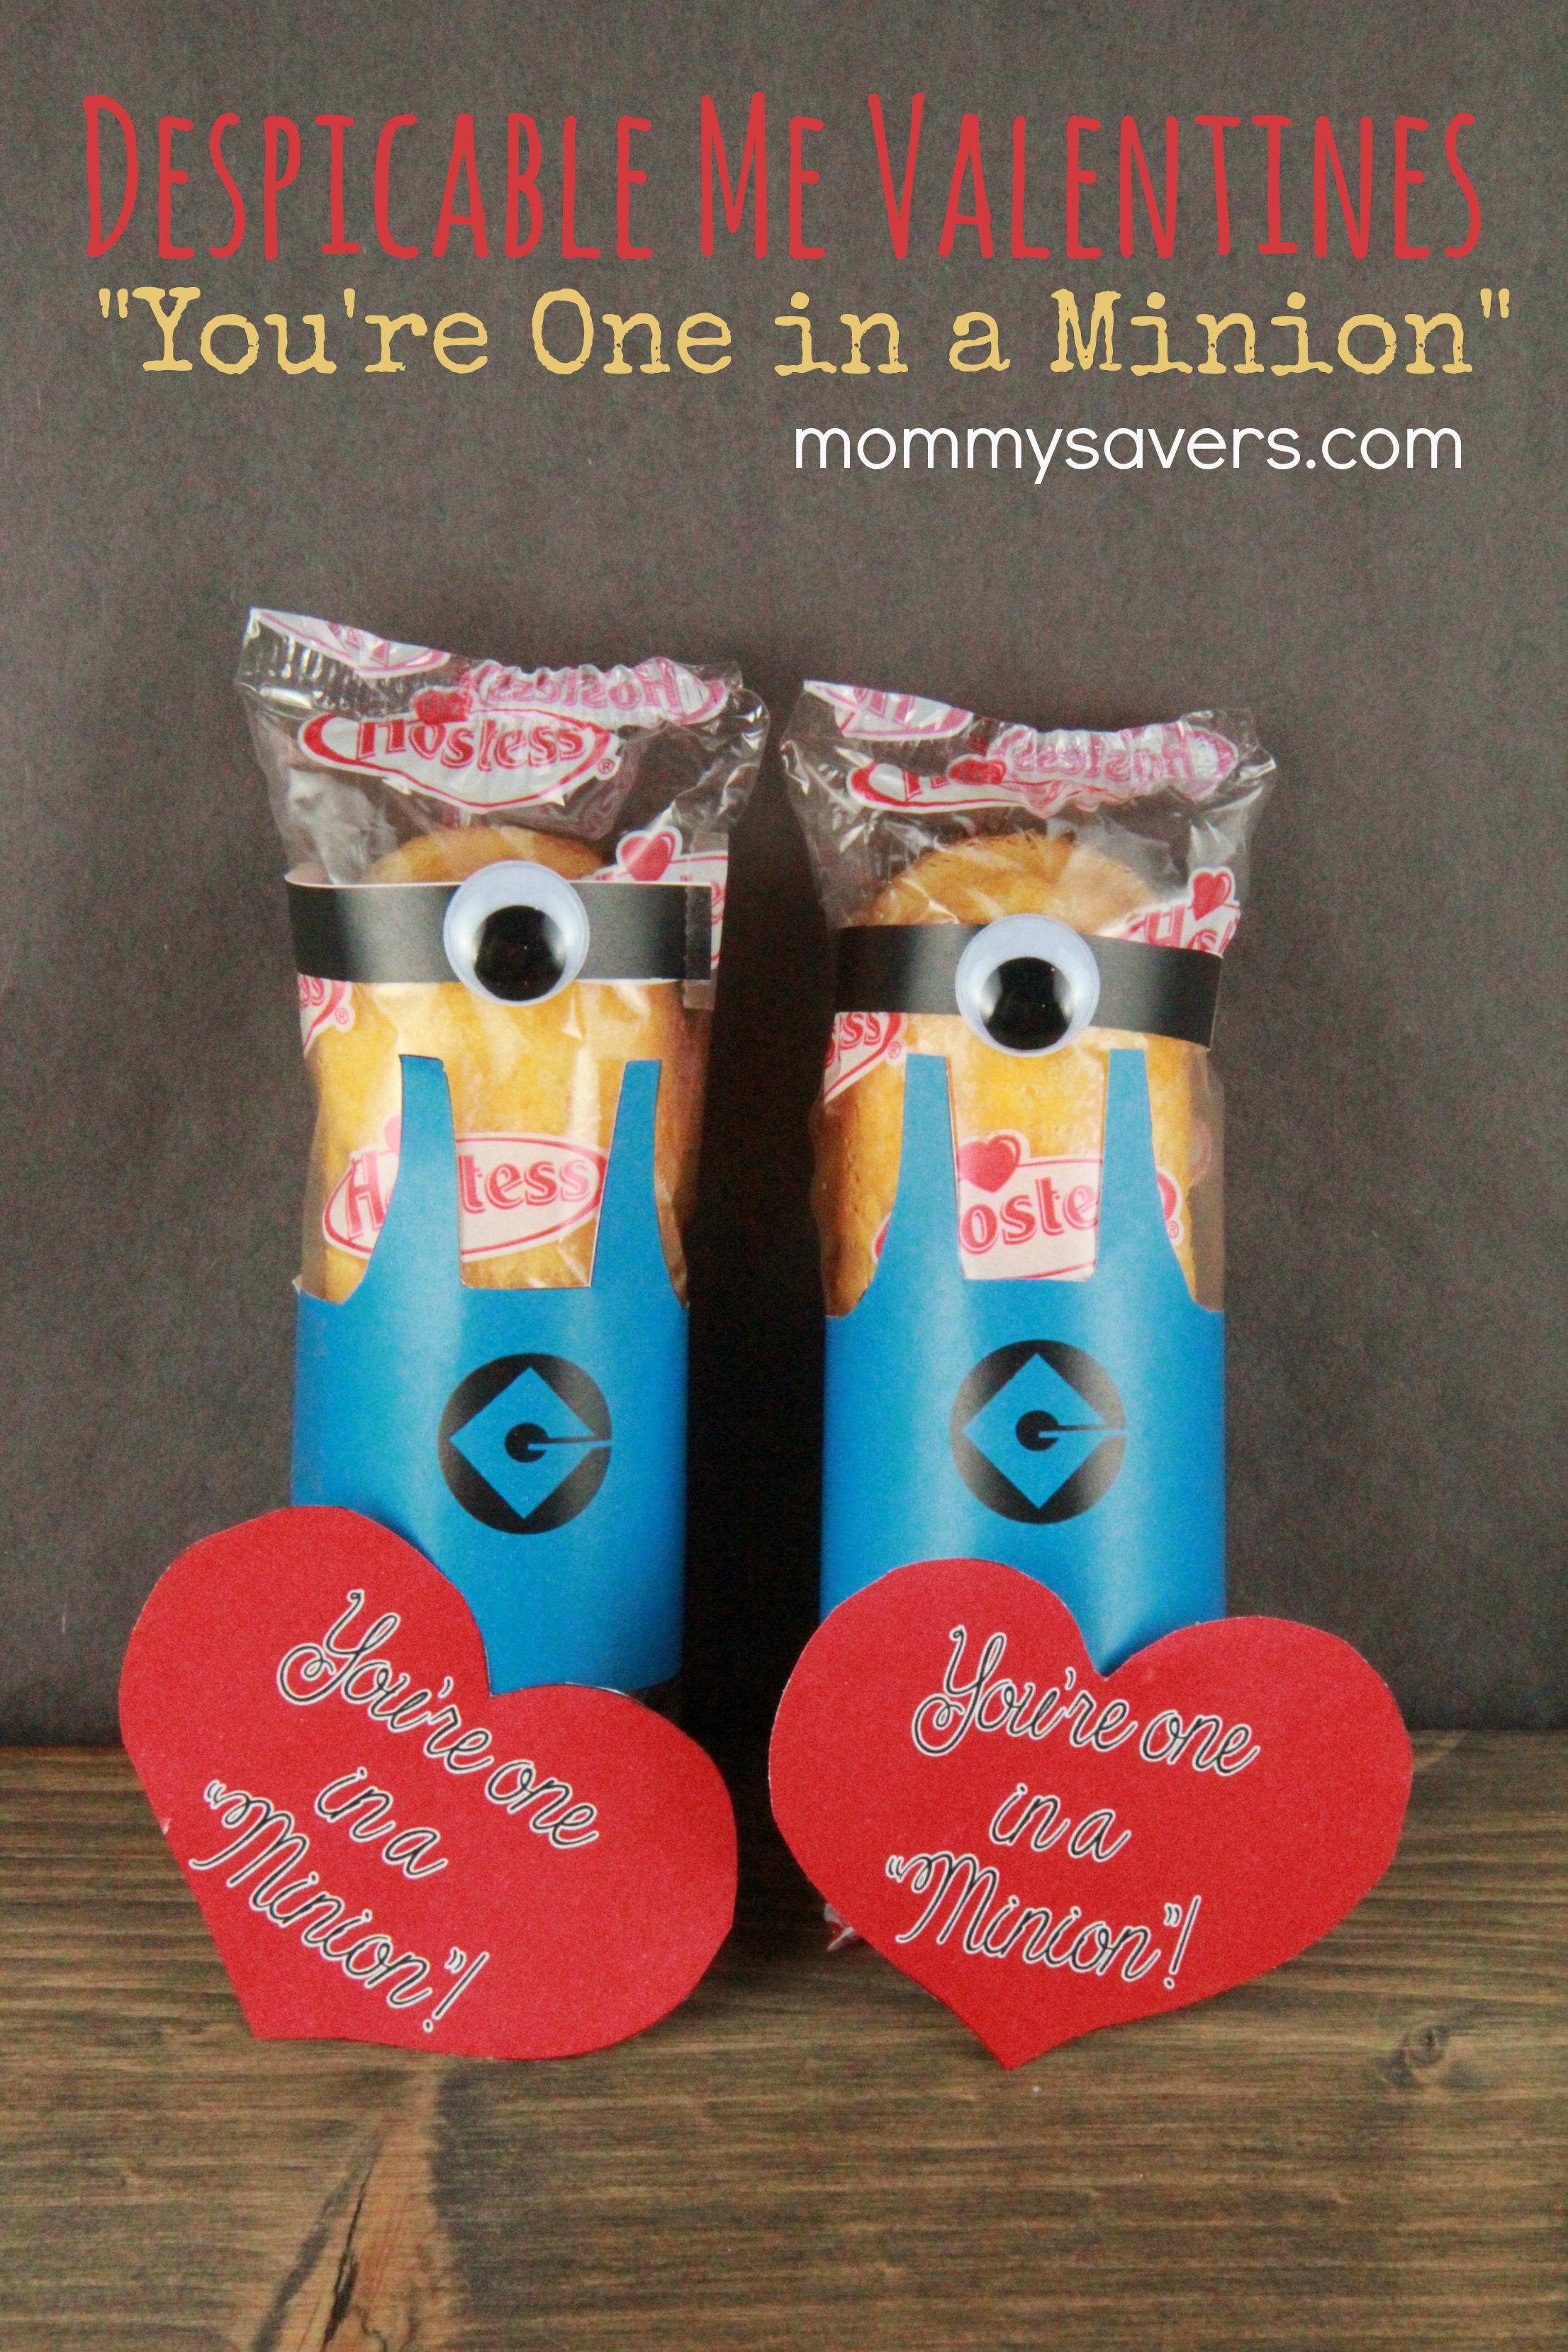 Free Printable: Minion Valentine from Despicable Me